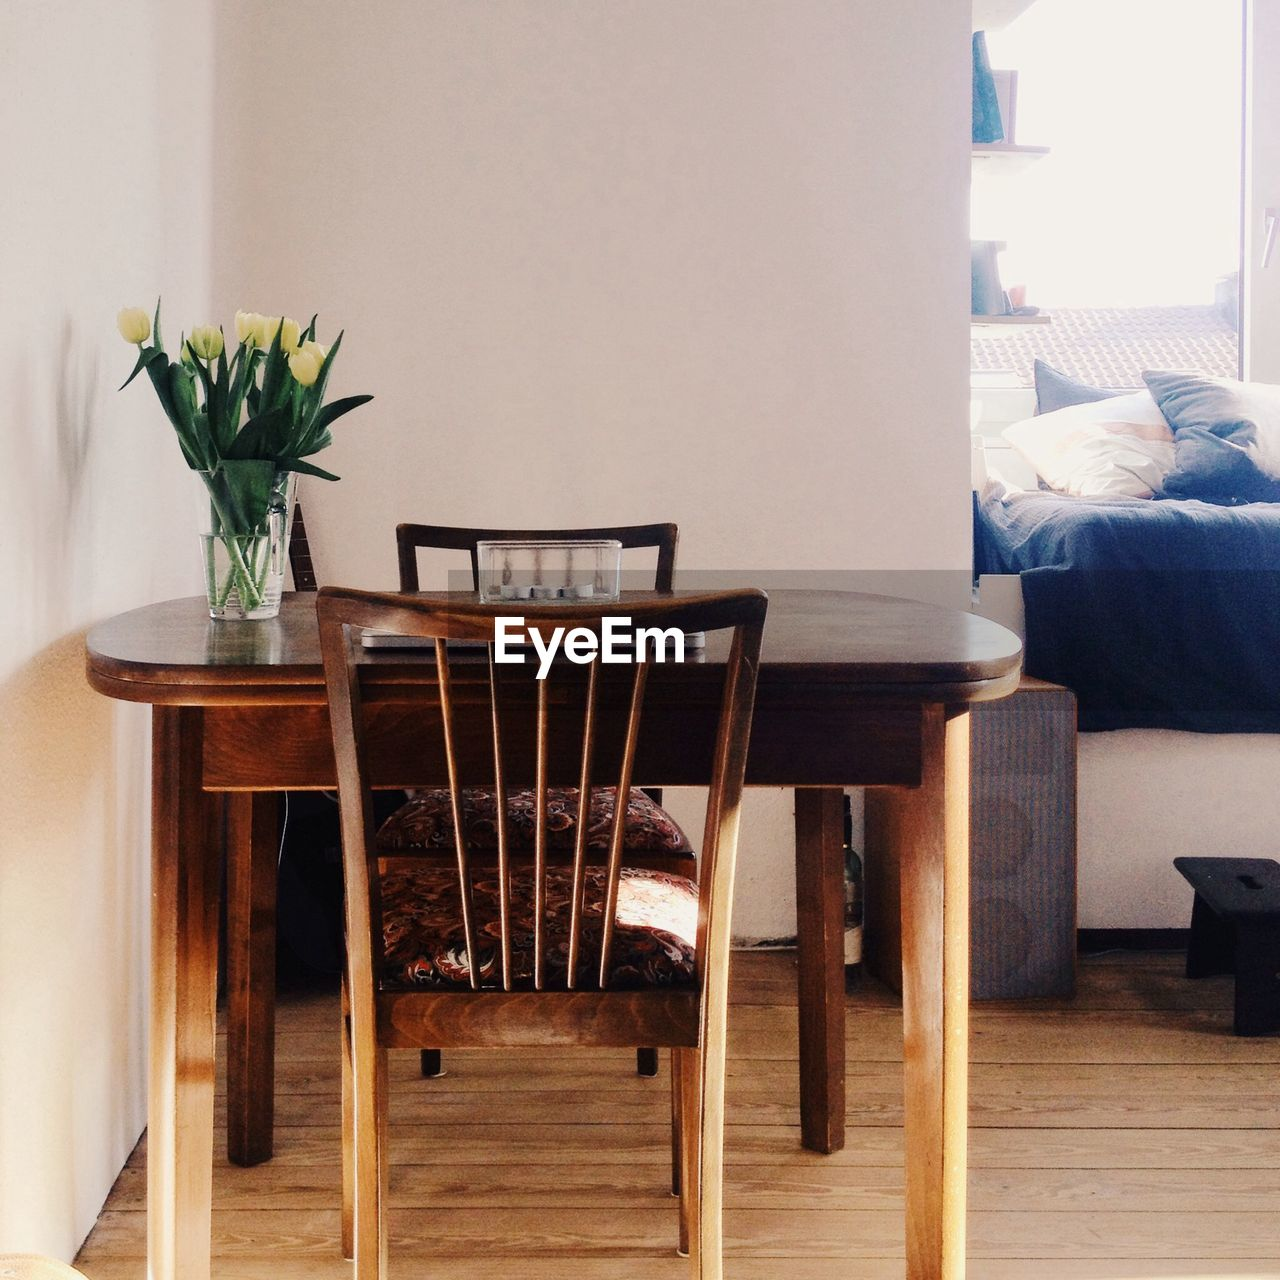 Vase on table with chairs in a room